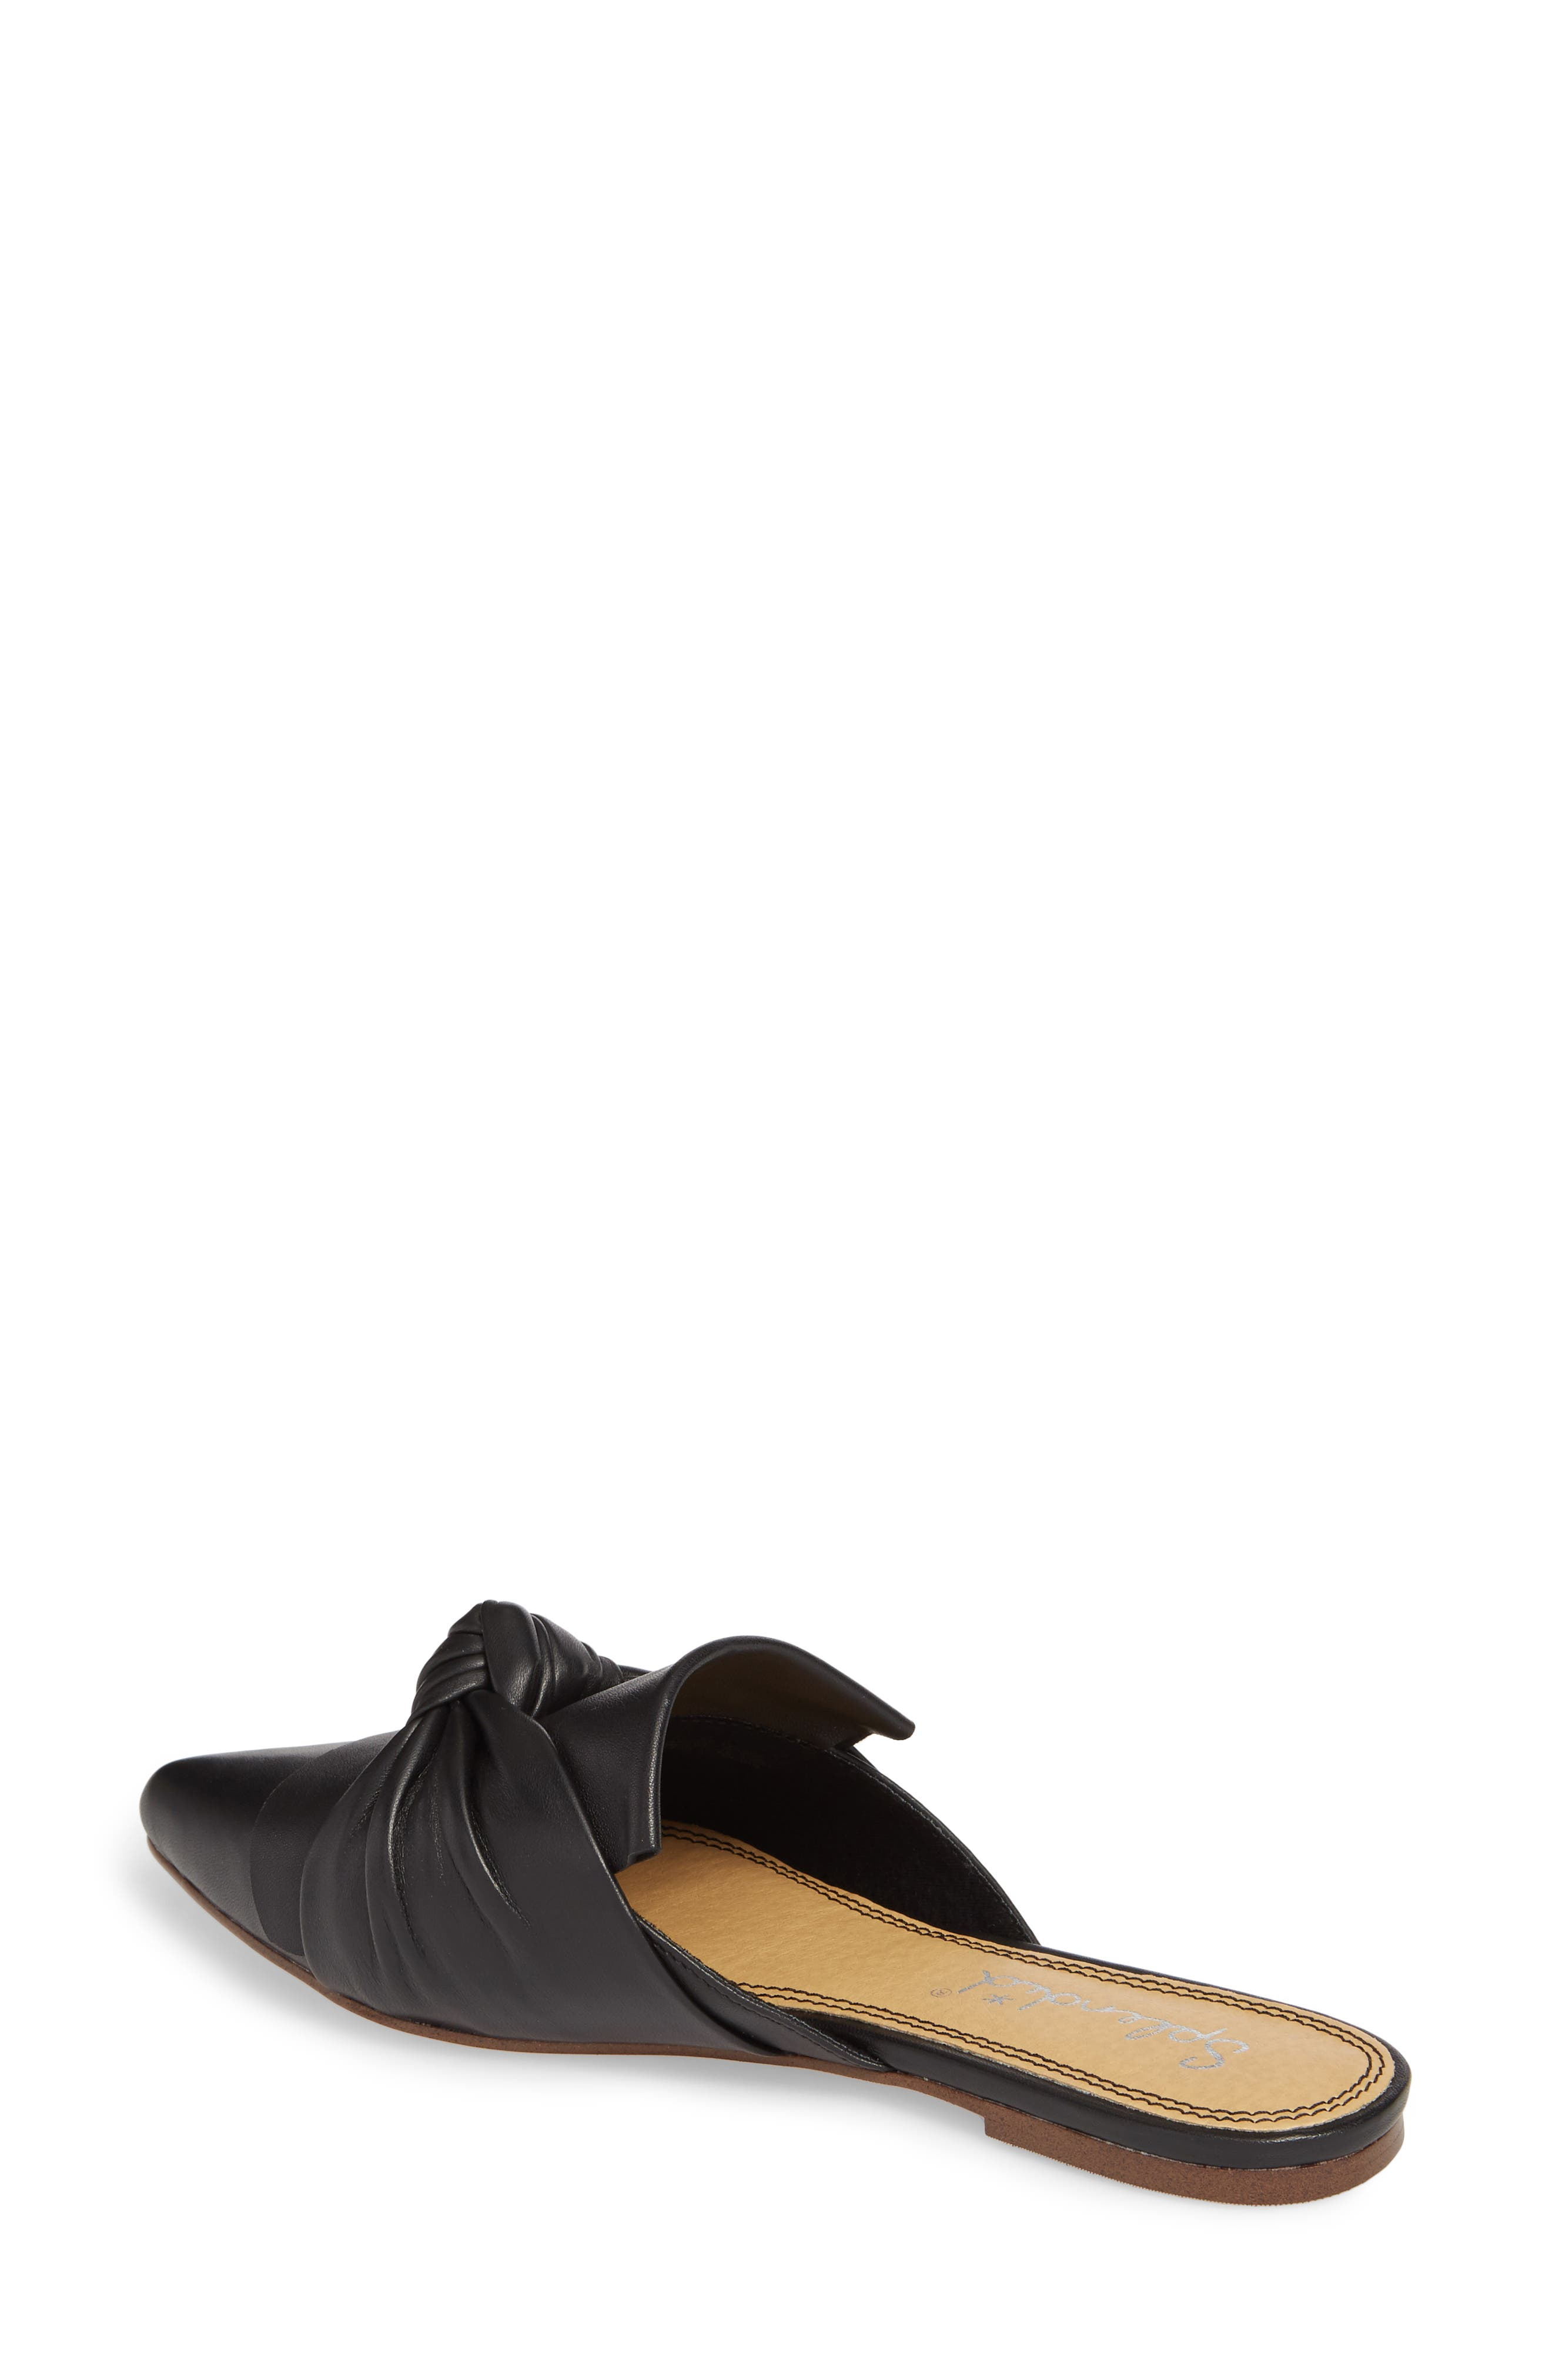 Bassett Knotted Pointy Toe Mule,                             Alternate thumbnail 4, color,